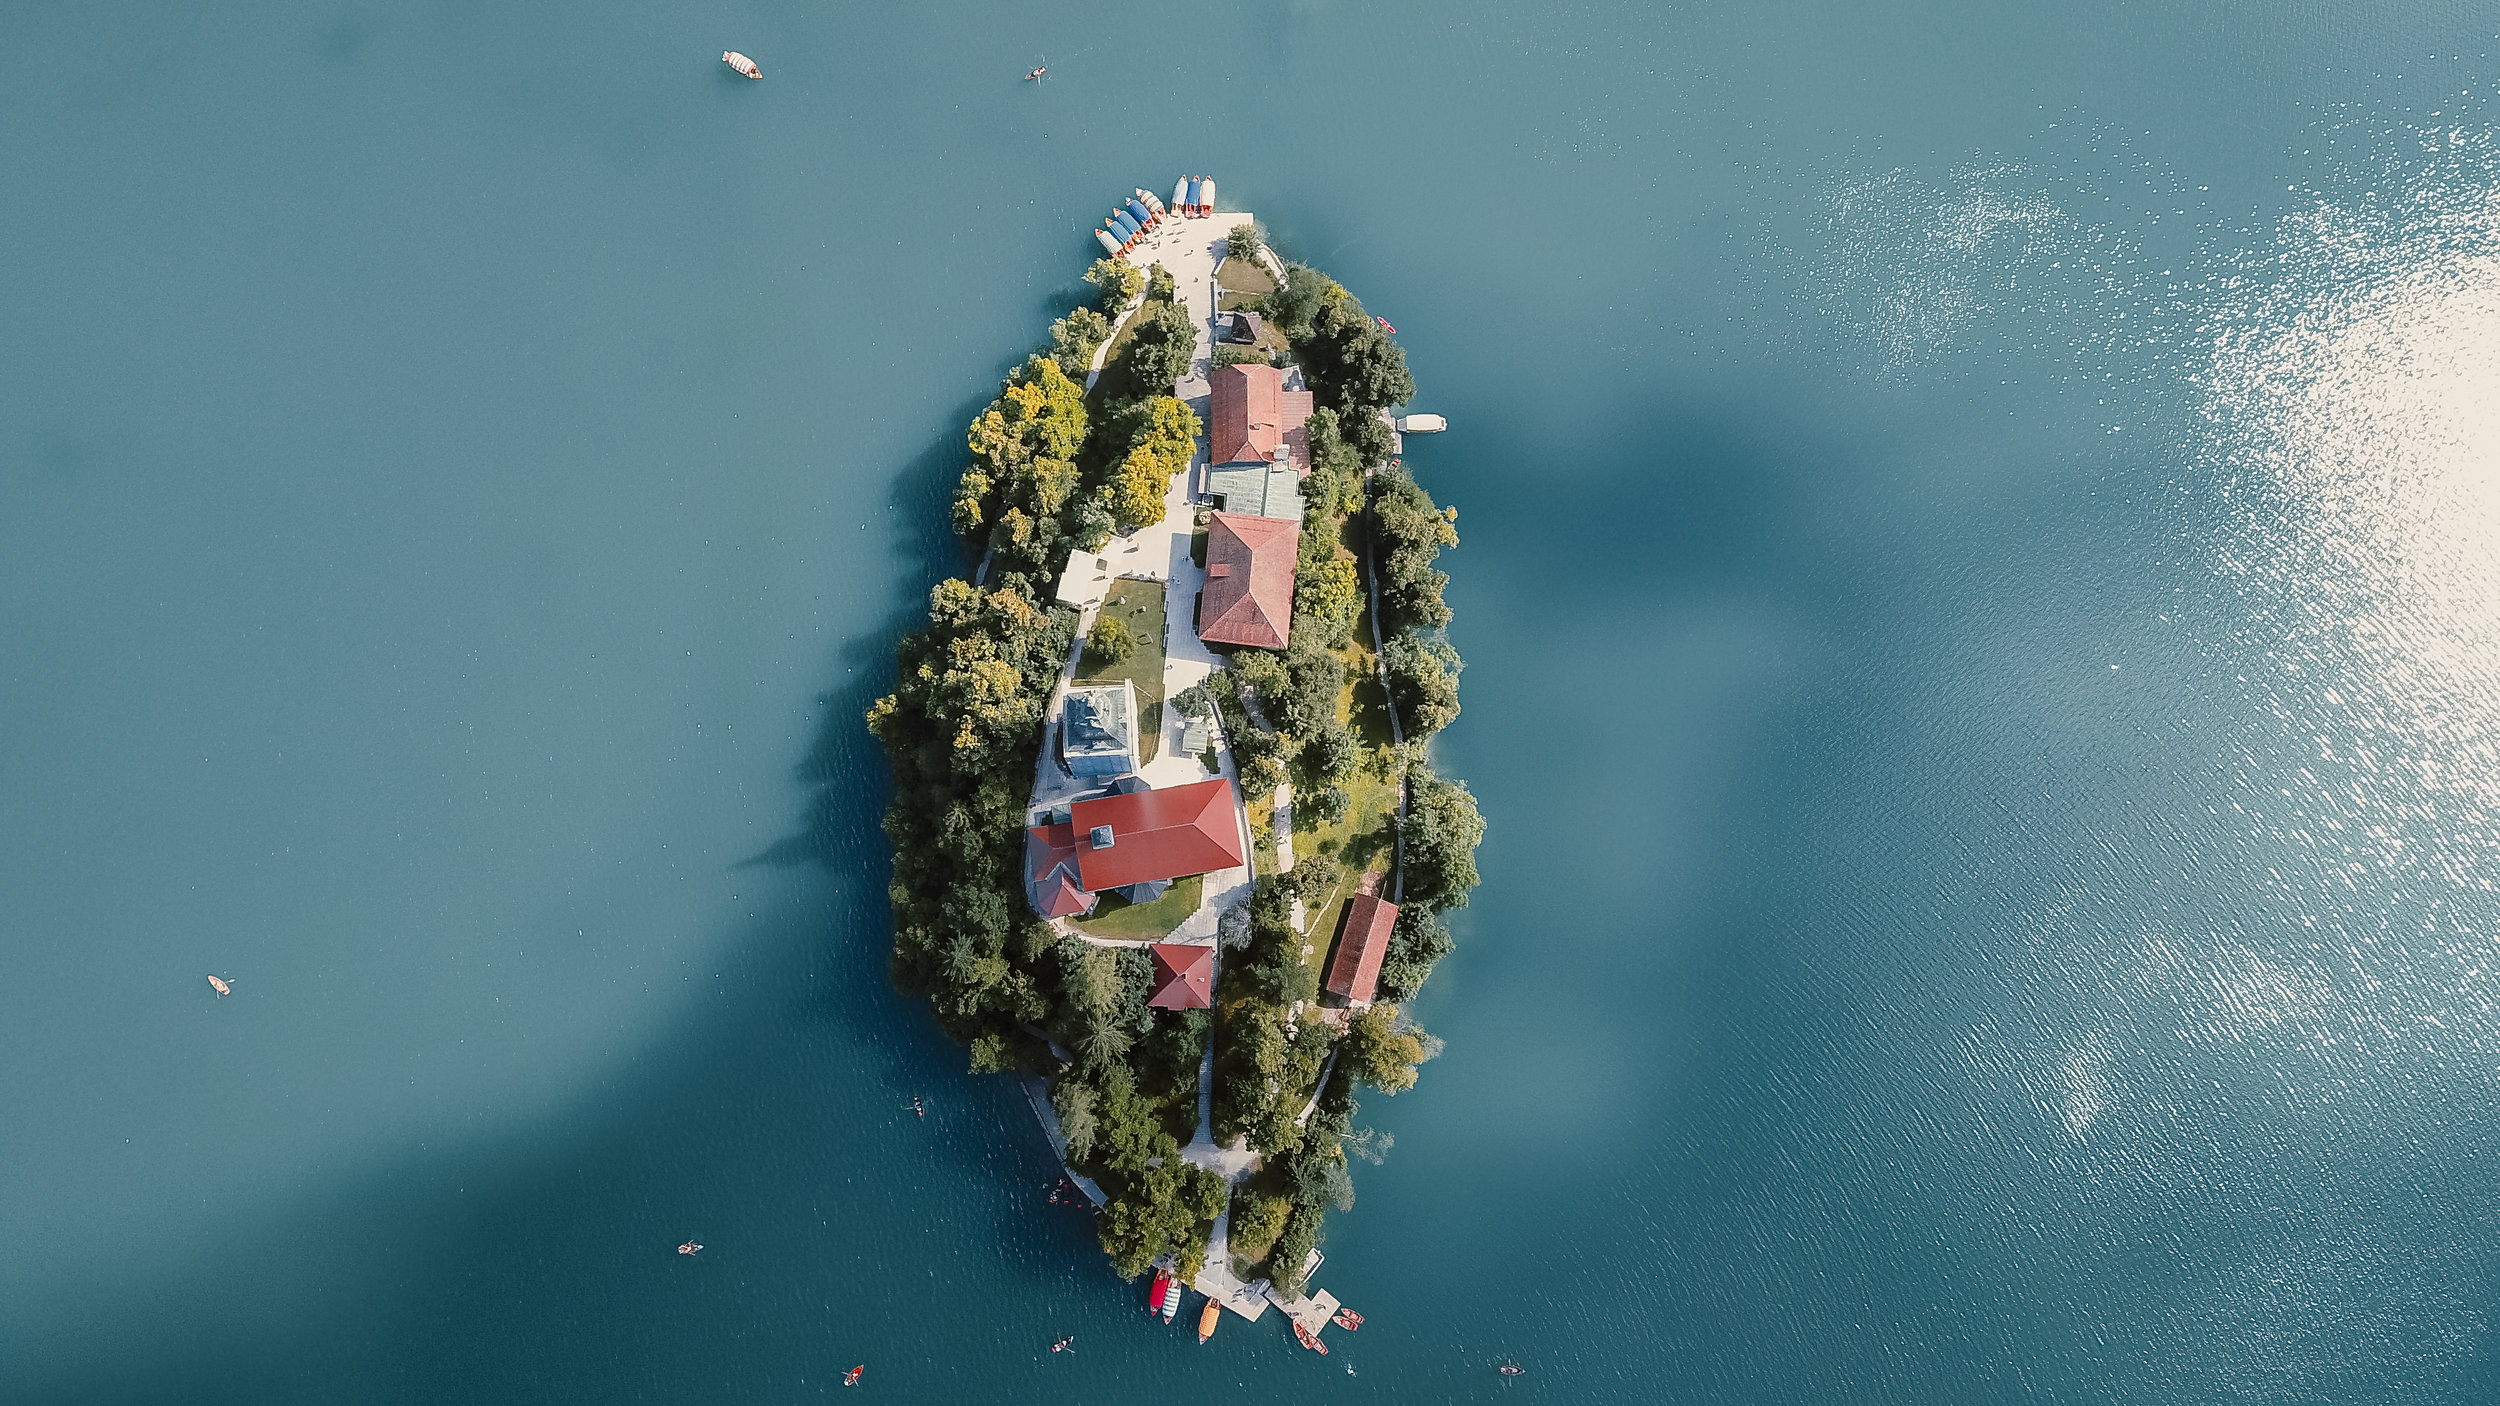 Private island with houses.